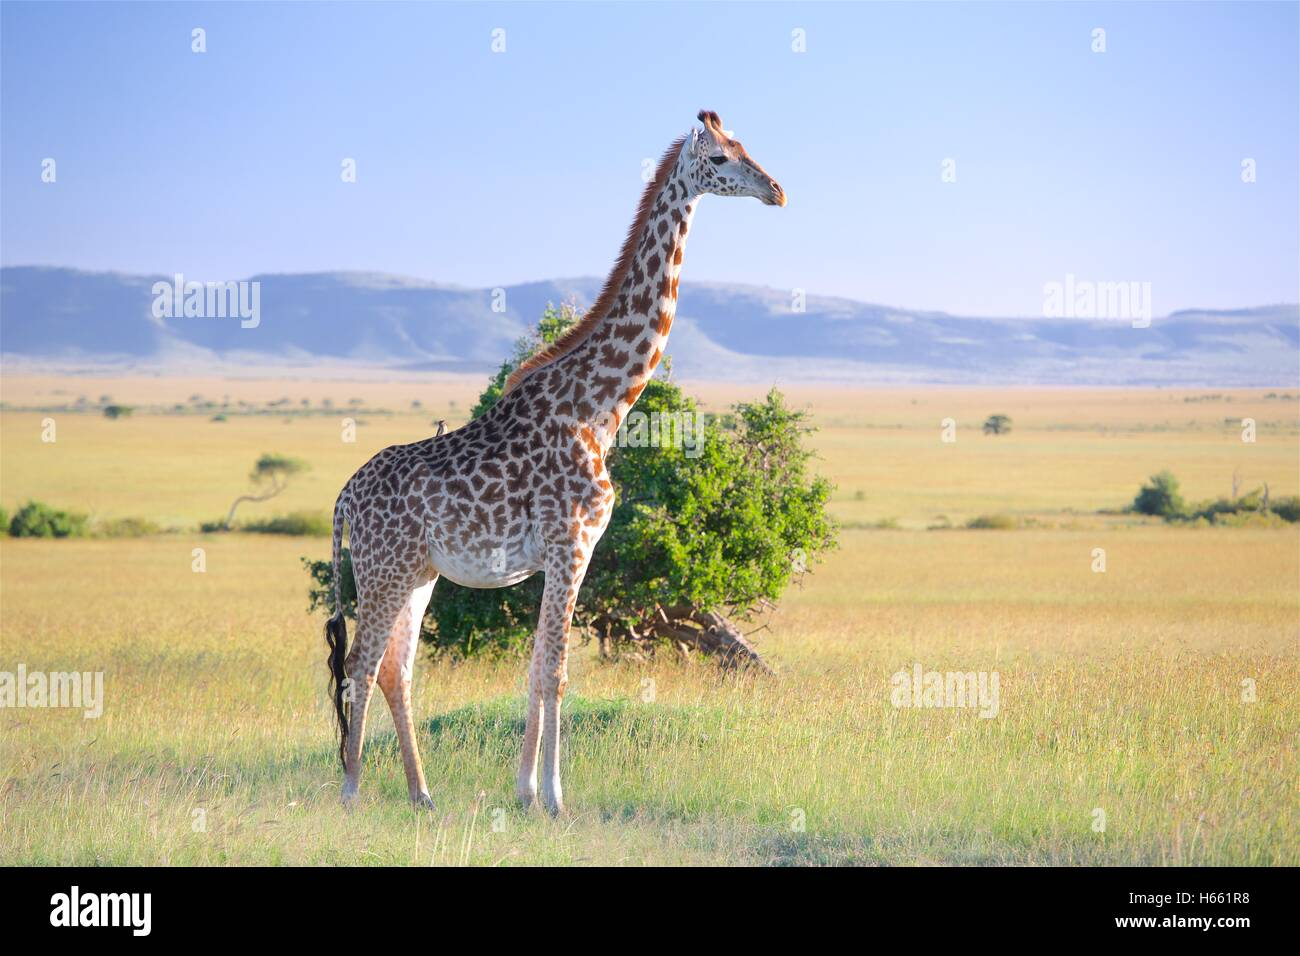 Giraffe on the savannah on safari in Masai Mara, Kenya. - Stock Image